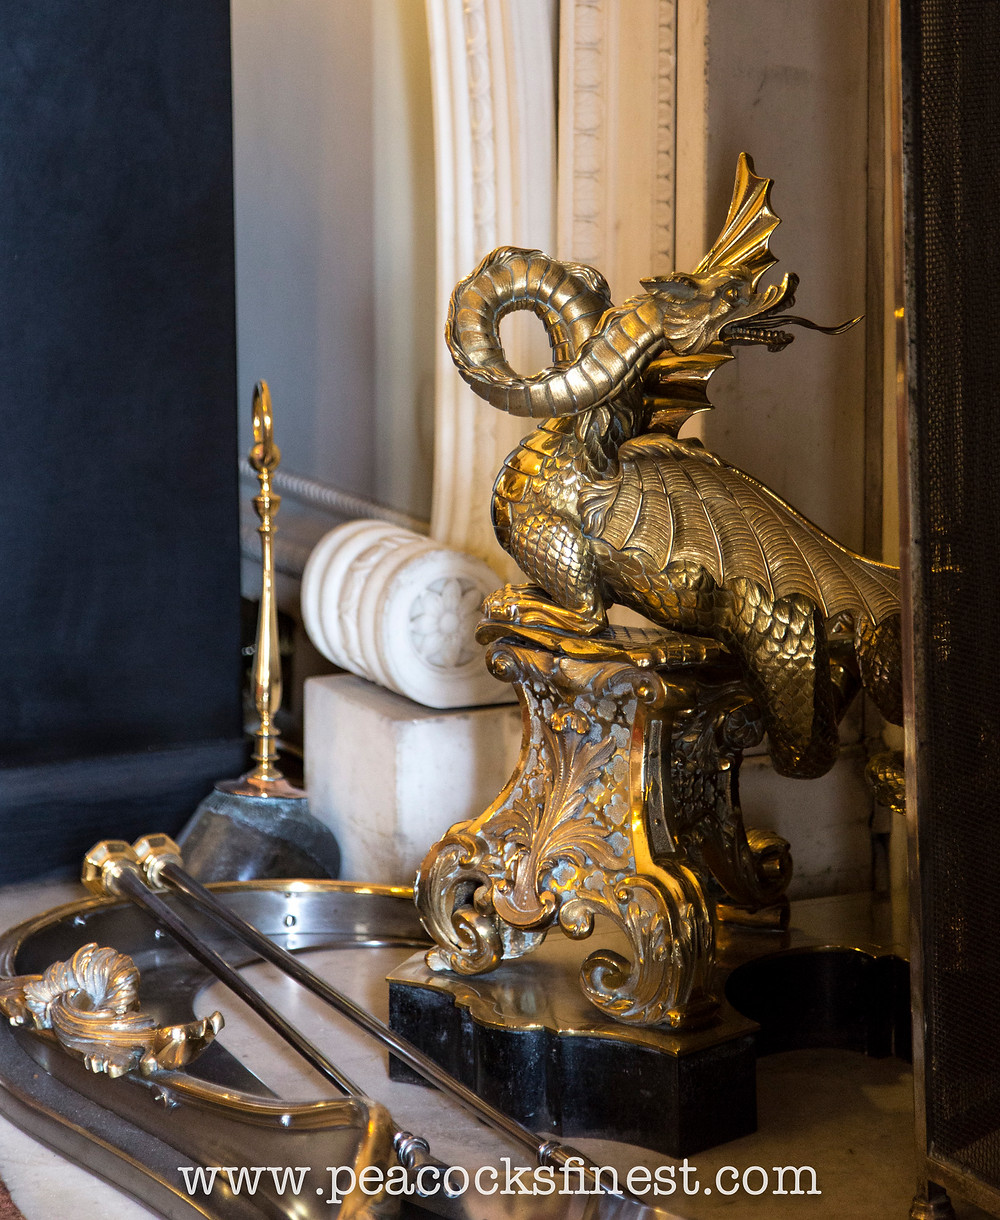 Harewood House, The Main Library. Extraordinary ornate brass firedogs, superbly modelled as dragons.